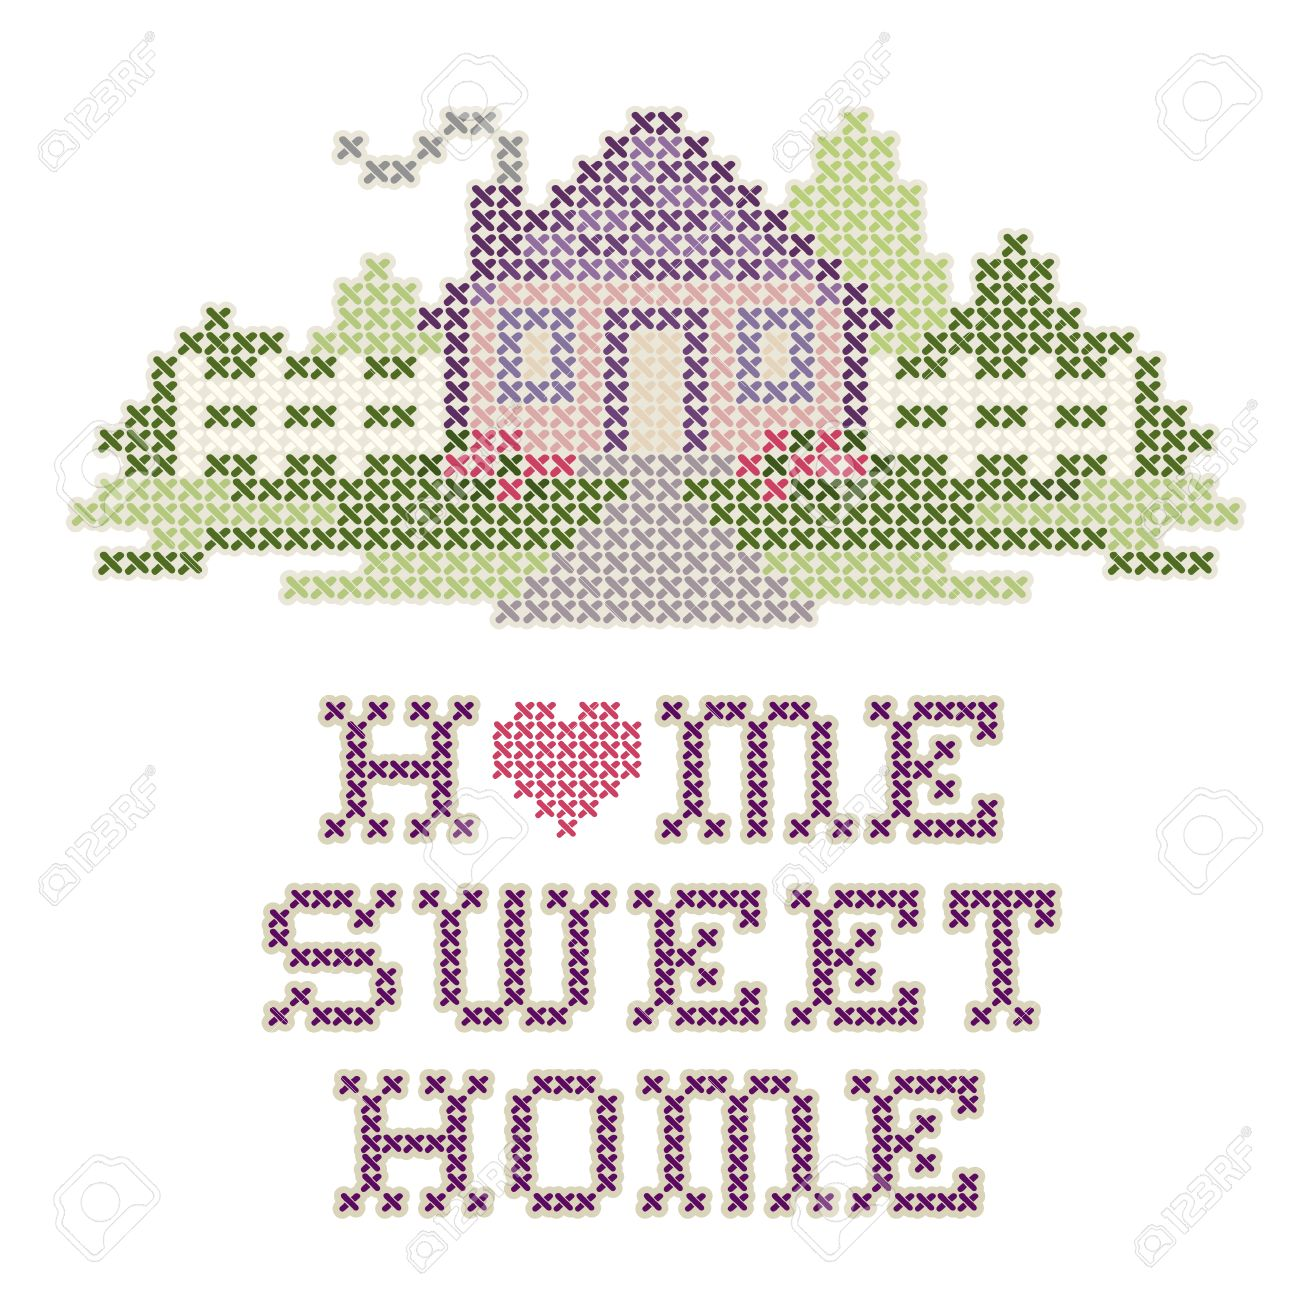 Vintage Embroidery, Home Sweet Home - 27417539